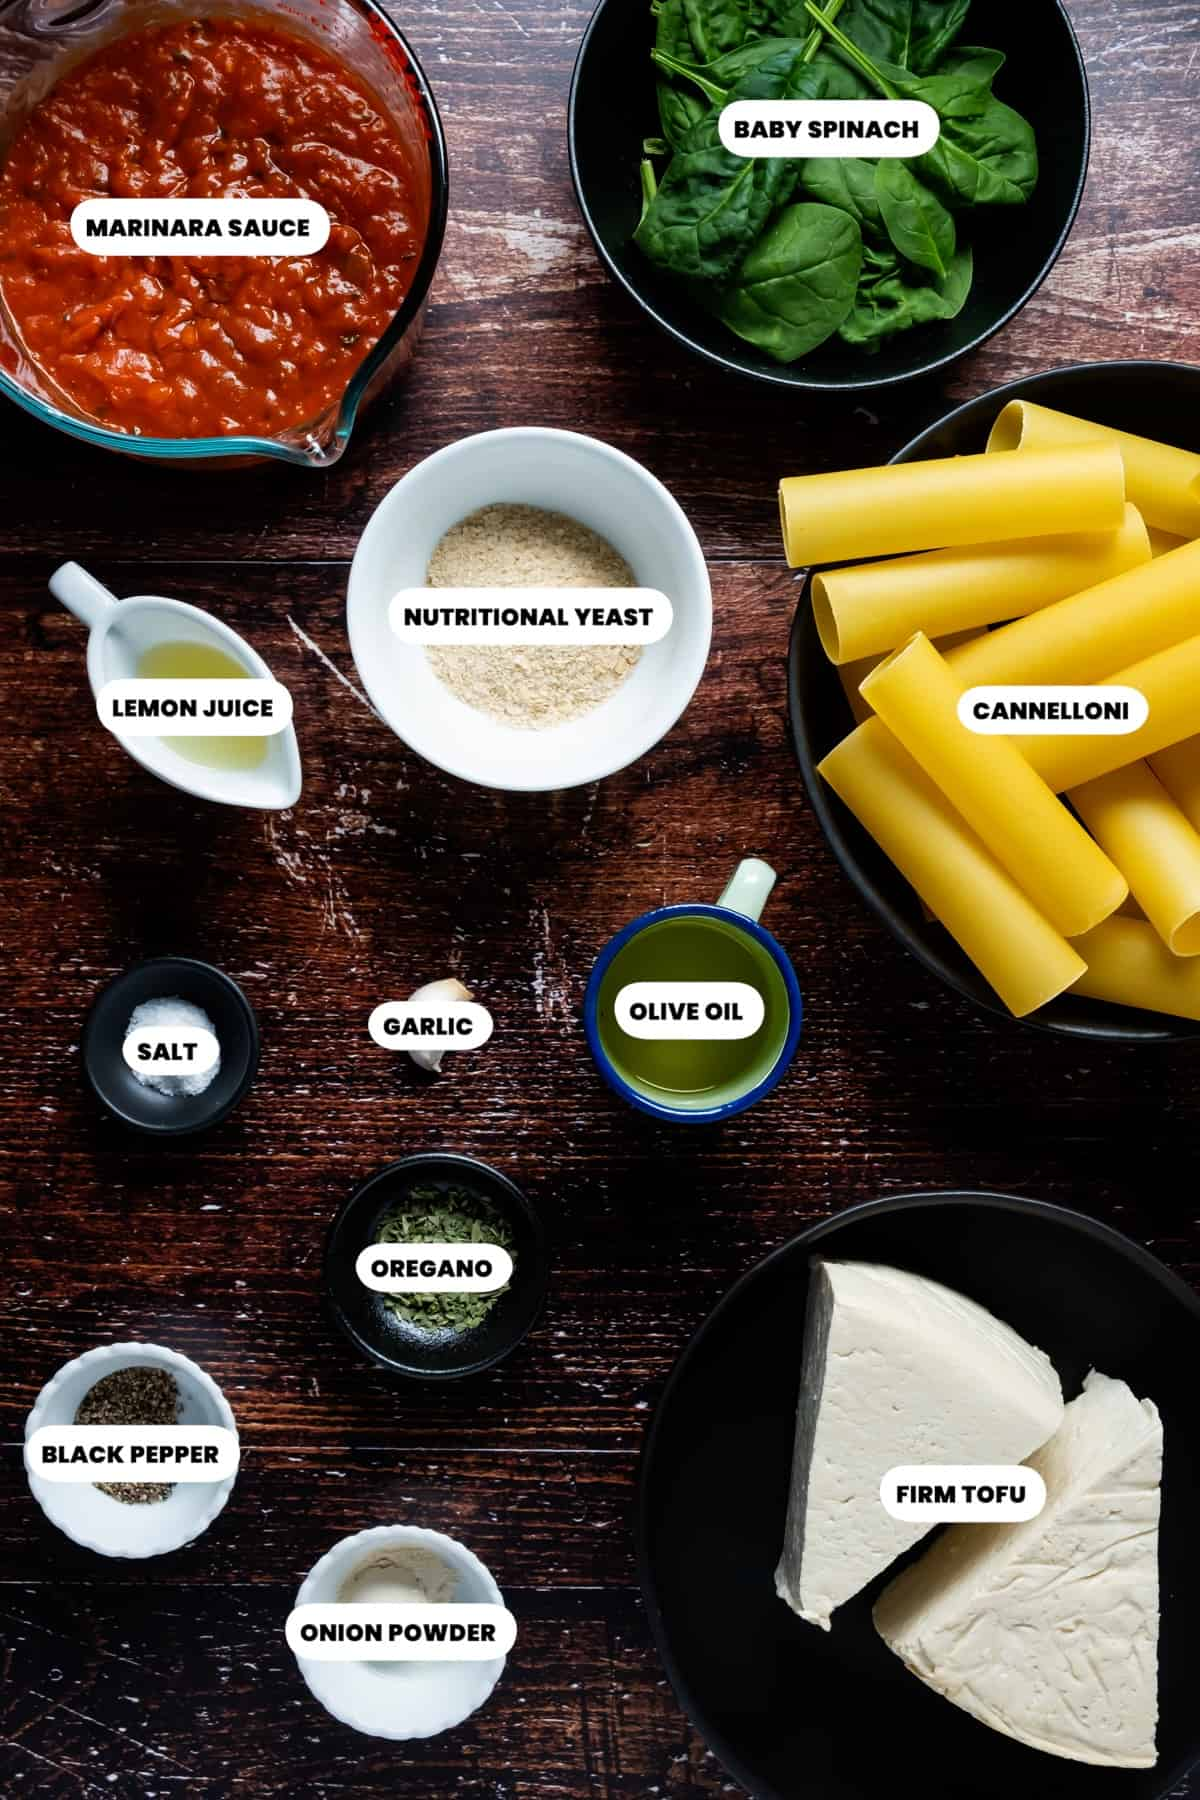 Photo of the ingredients needed to make vegan cannelloni.